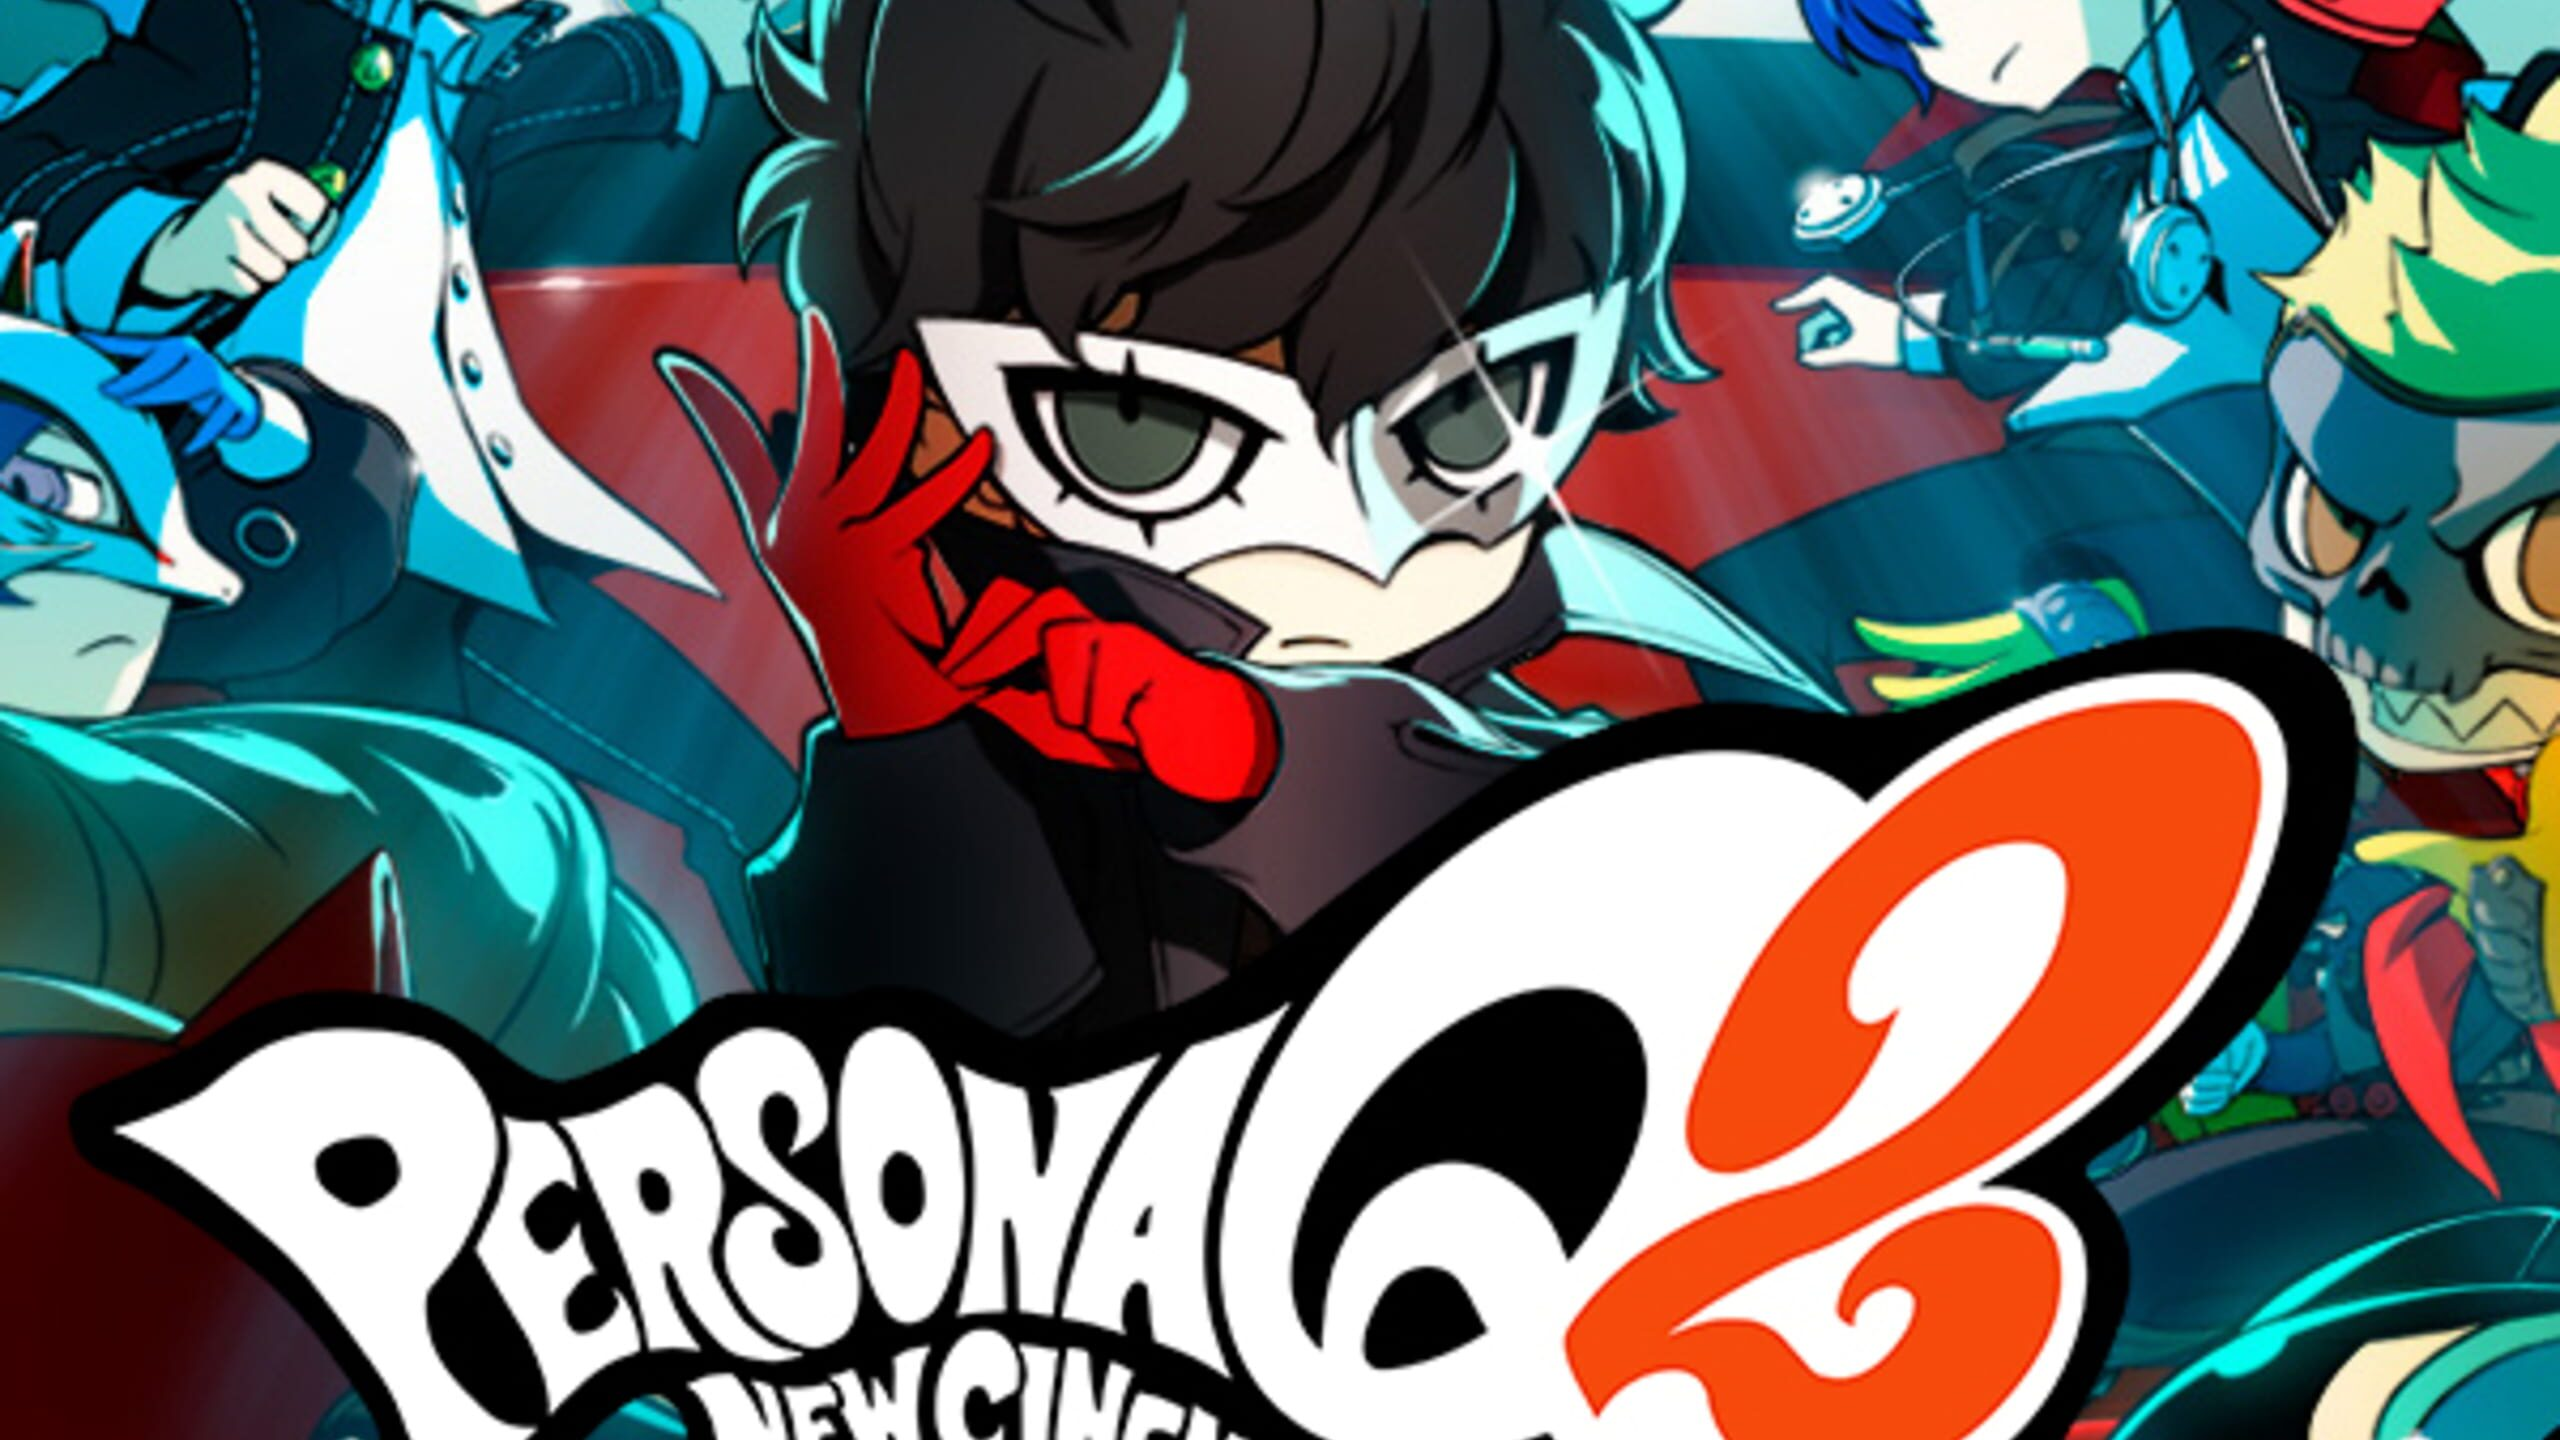 game cover art for Persona Q2: New Cinema Labyrinth